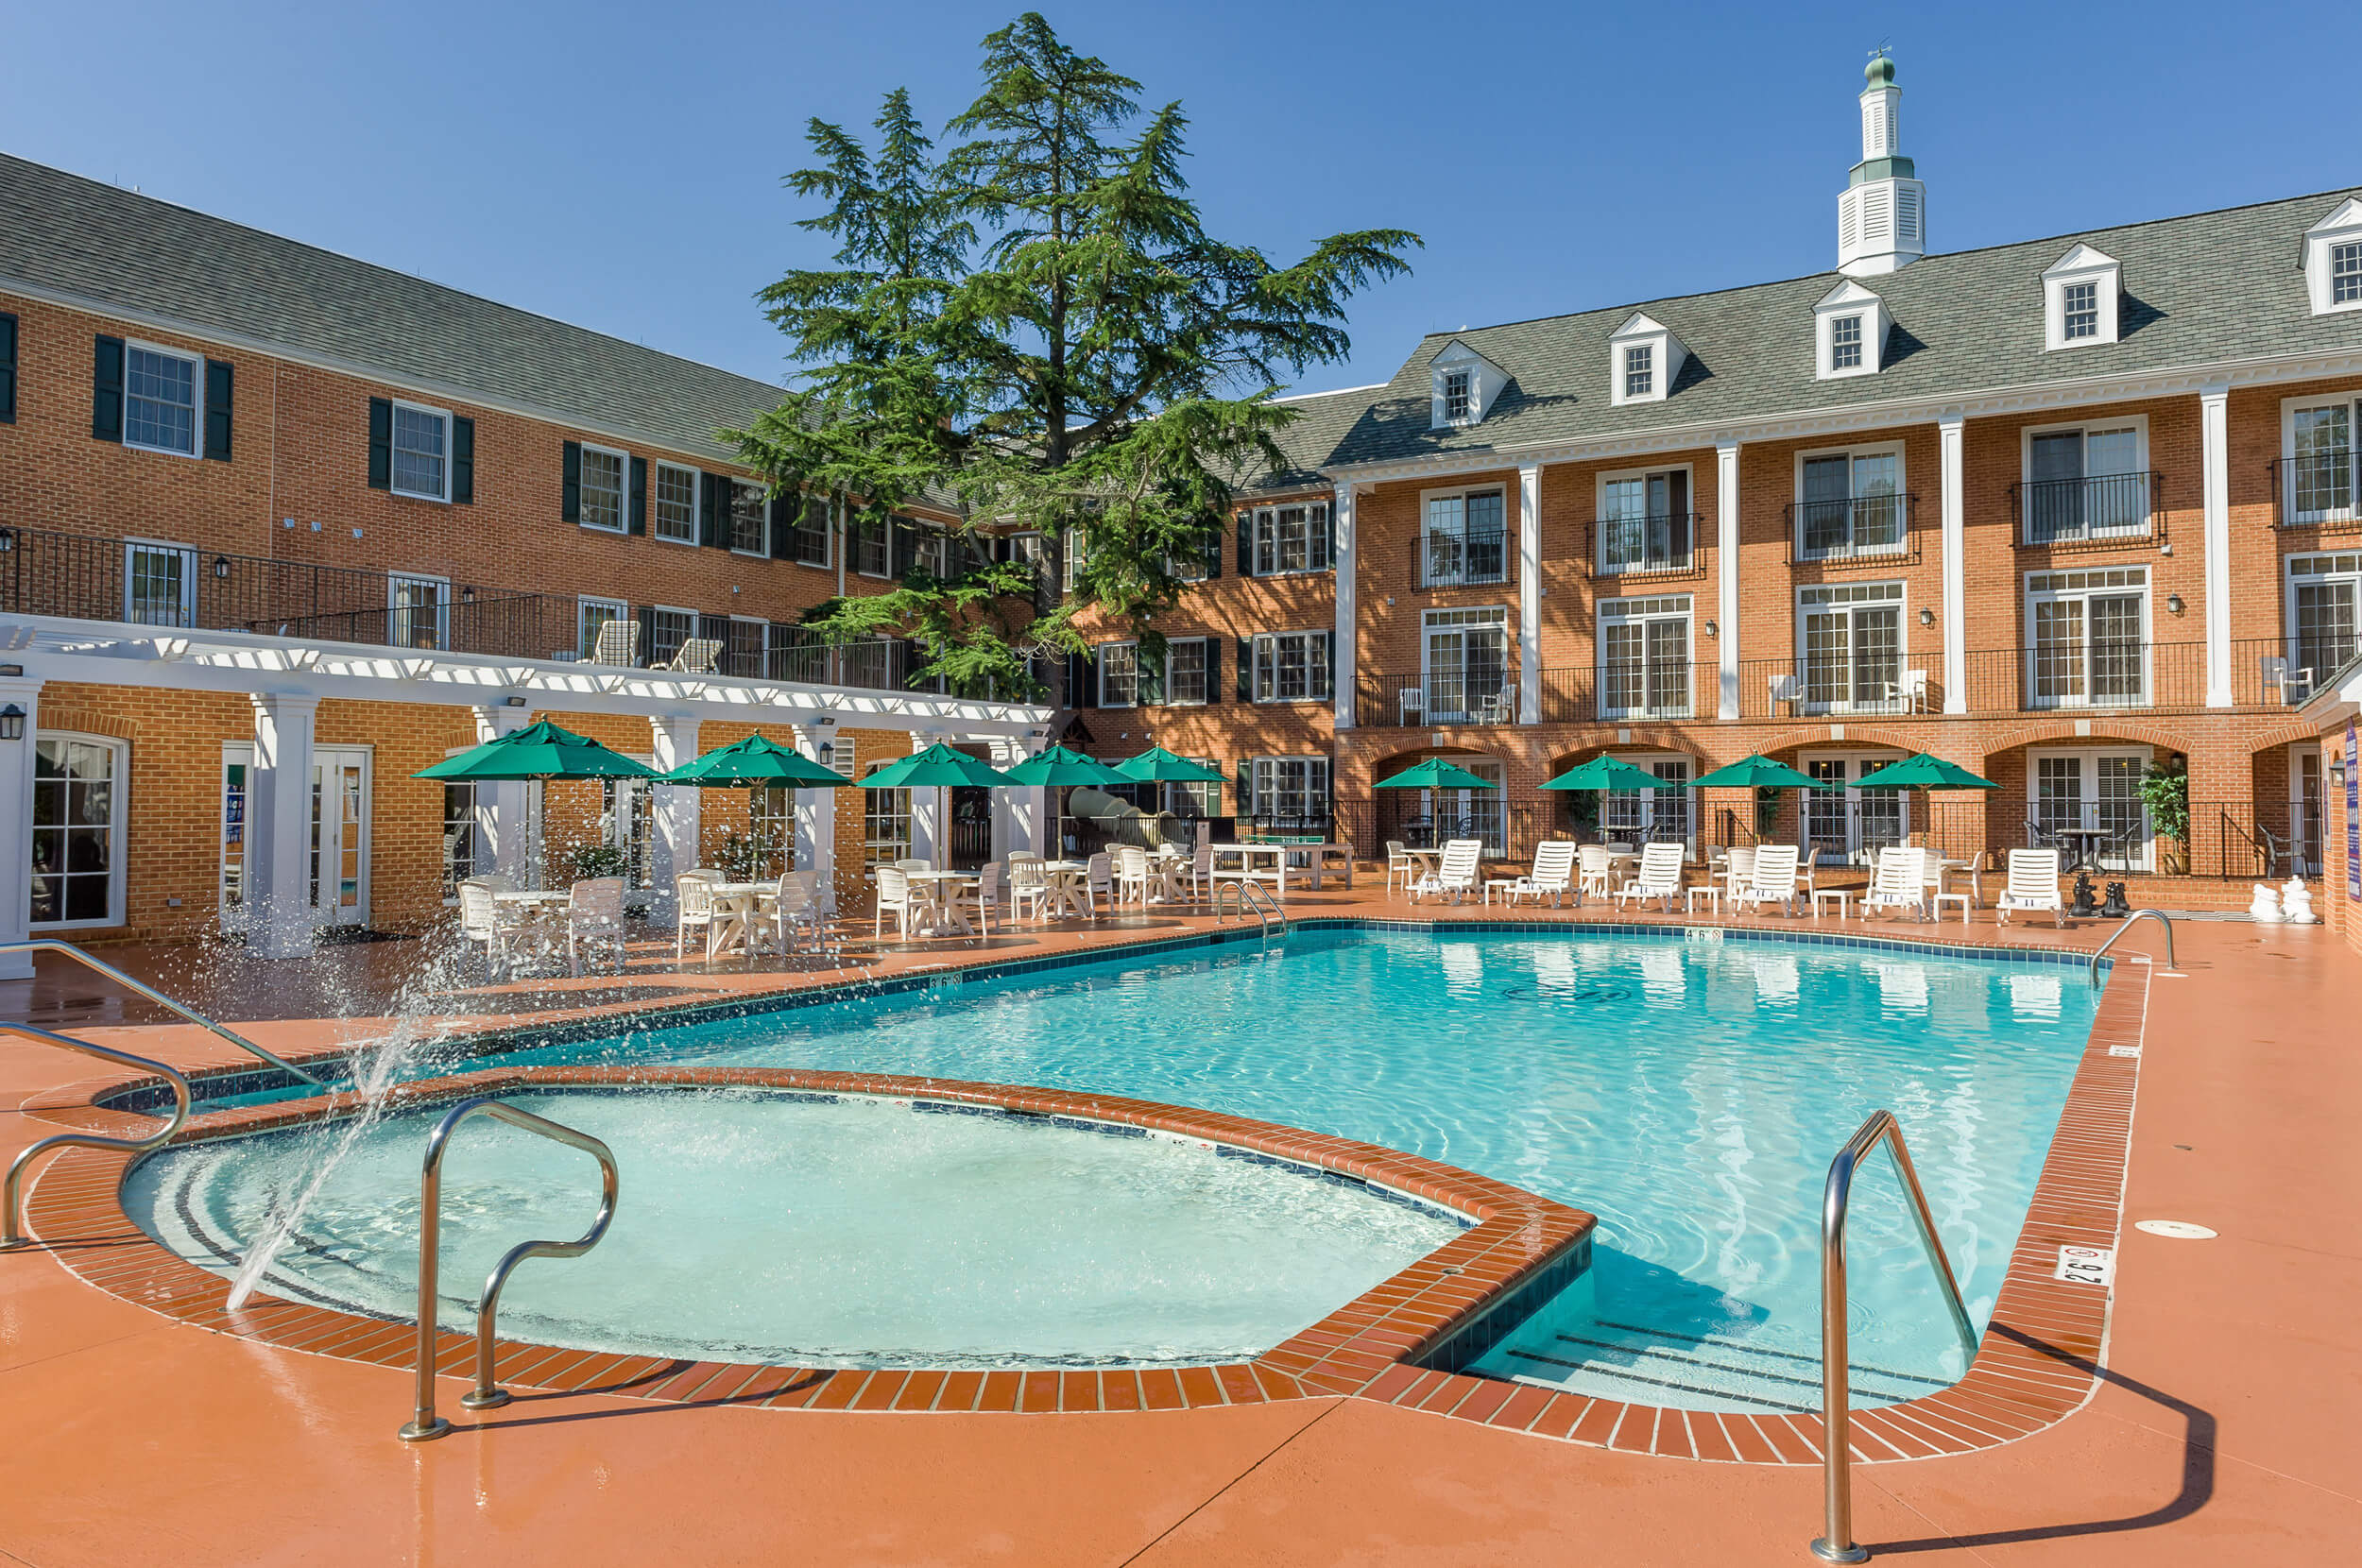 Pool at our Williamsburg Resorts | Westgate Historic Williamsburg Resort | Westgate Resorts